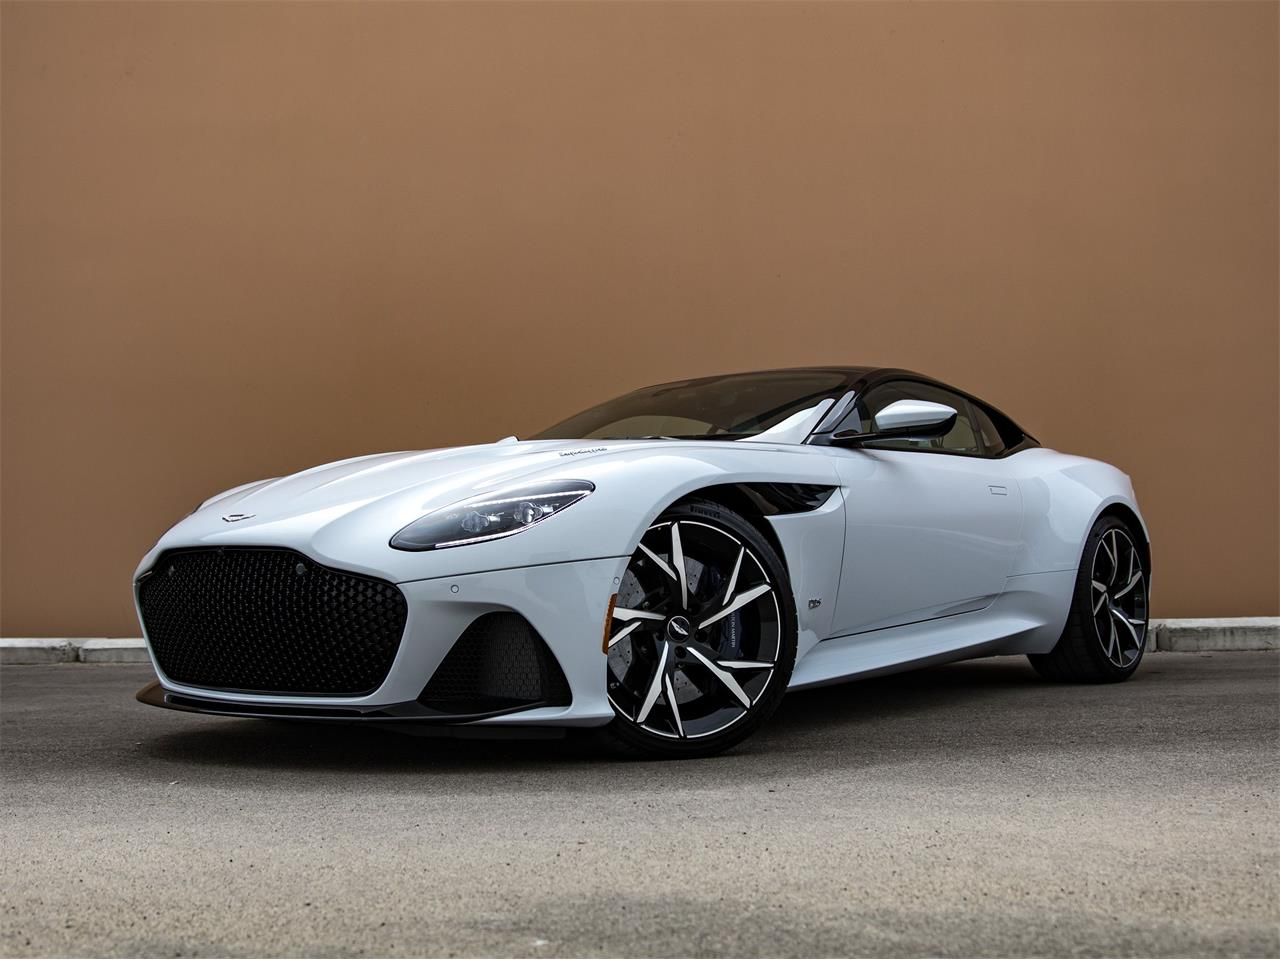 2019 Aston Martin DBS (CC-1339755) for sale in Kelowna, British Columbia